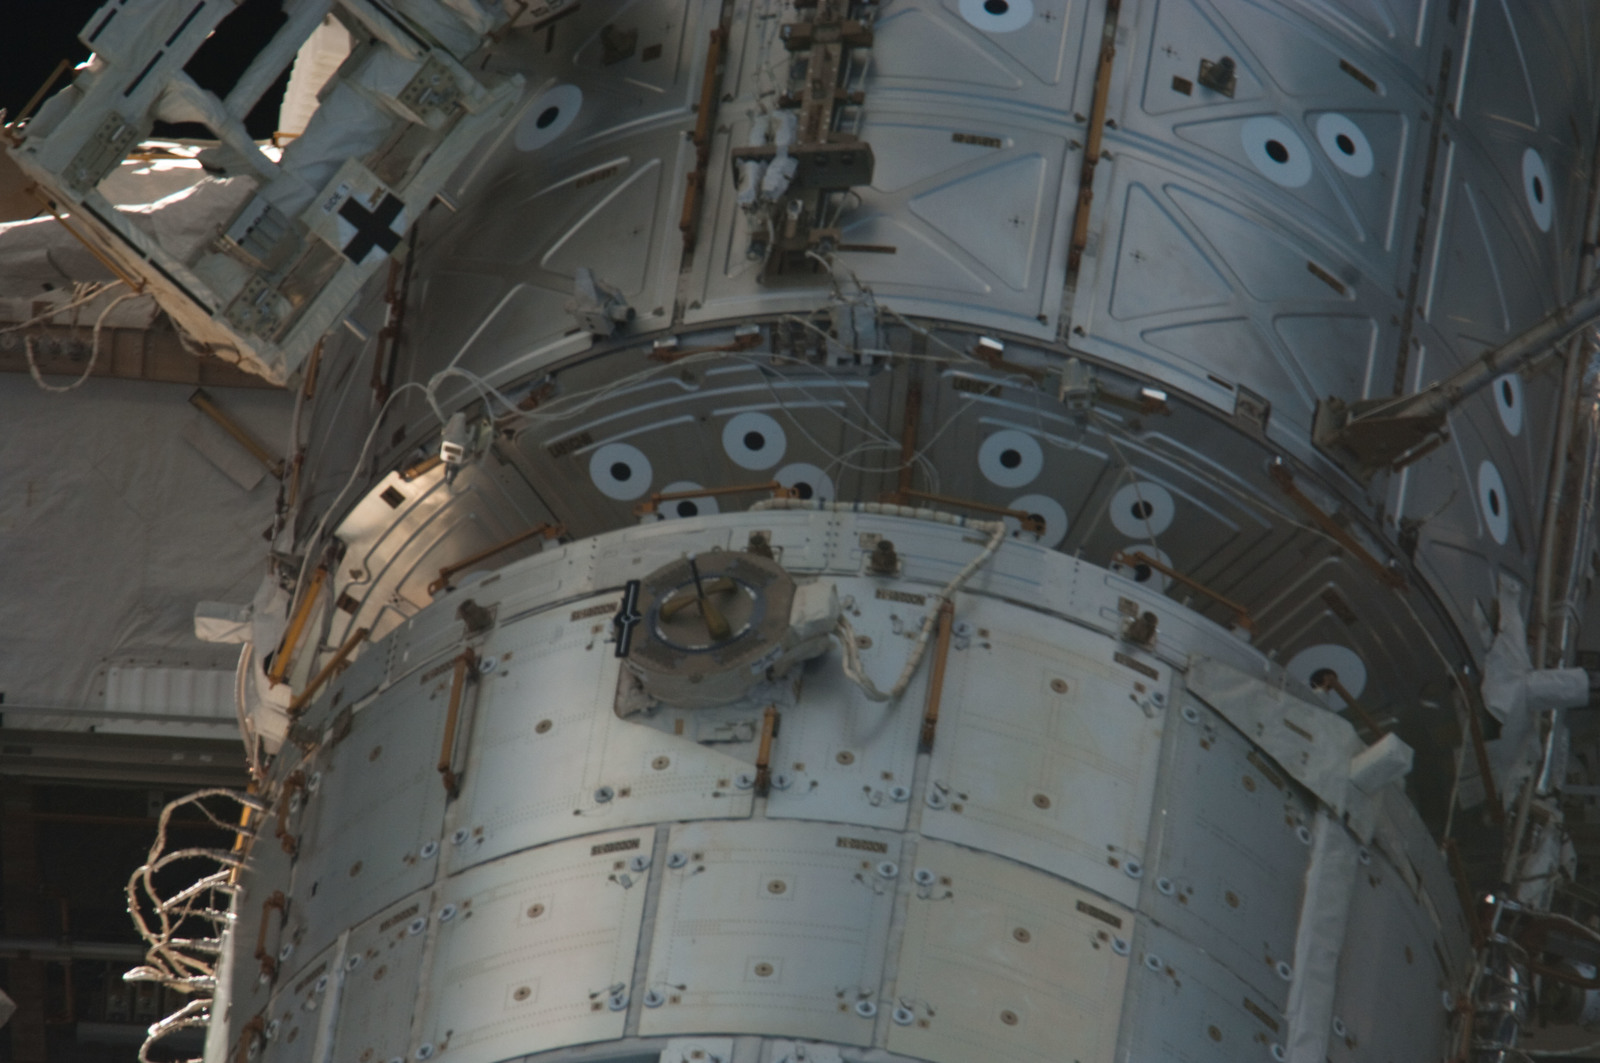 S134E011392 - STS-134 - Close-up view of ISS